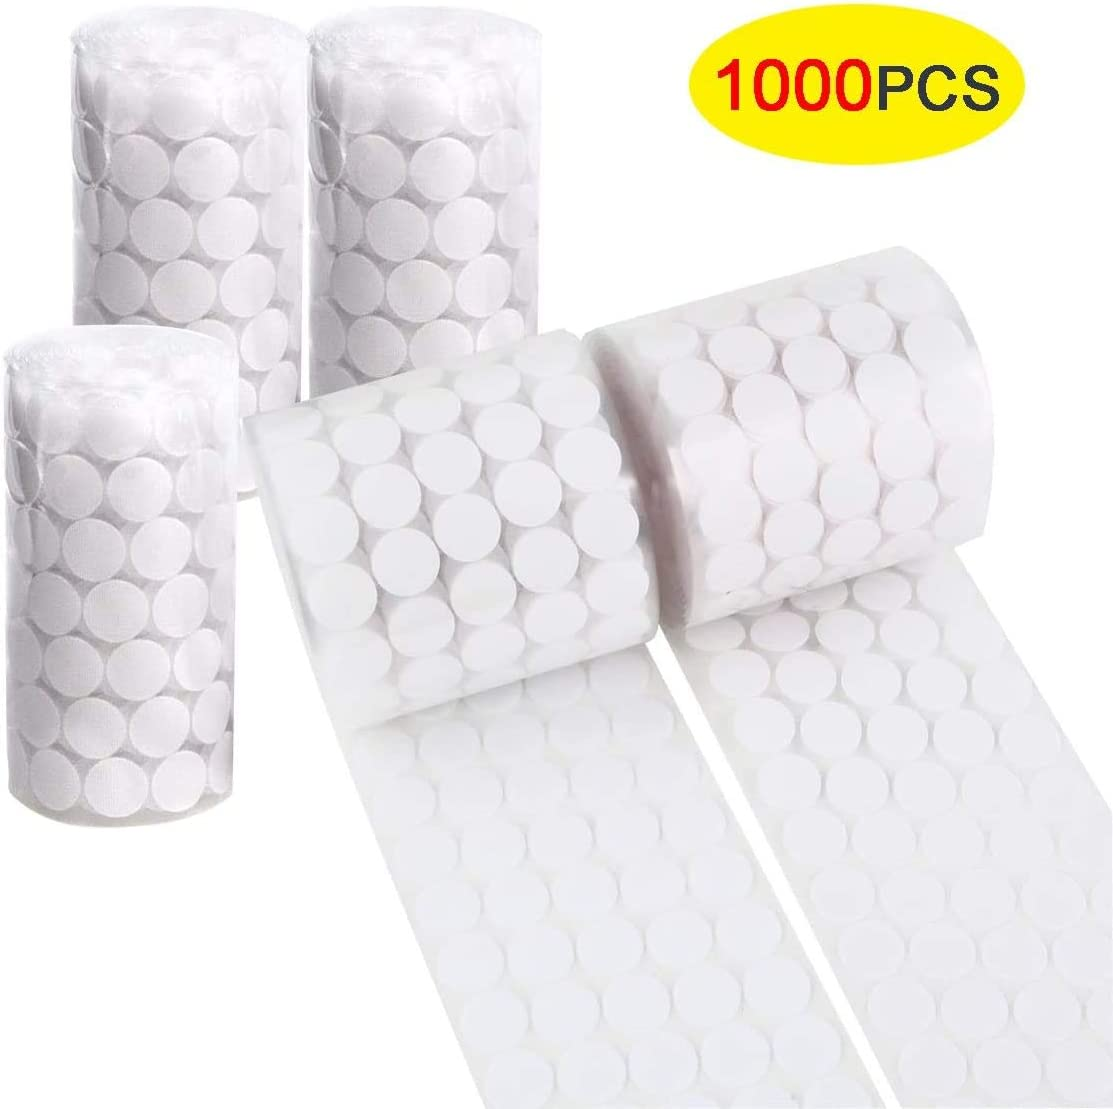 School Office Sticky Back Coins Magic Sticky Self Adhesive Double Sided Hook and Loop Self Adhesive Dots Super Sticky for Home fanshiontide 1000 Pcs 10mm Stick On Coins